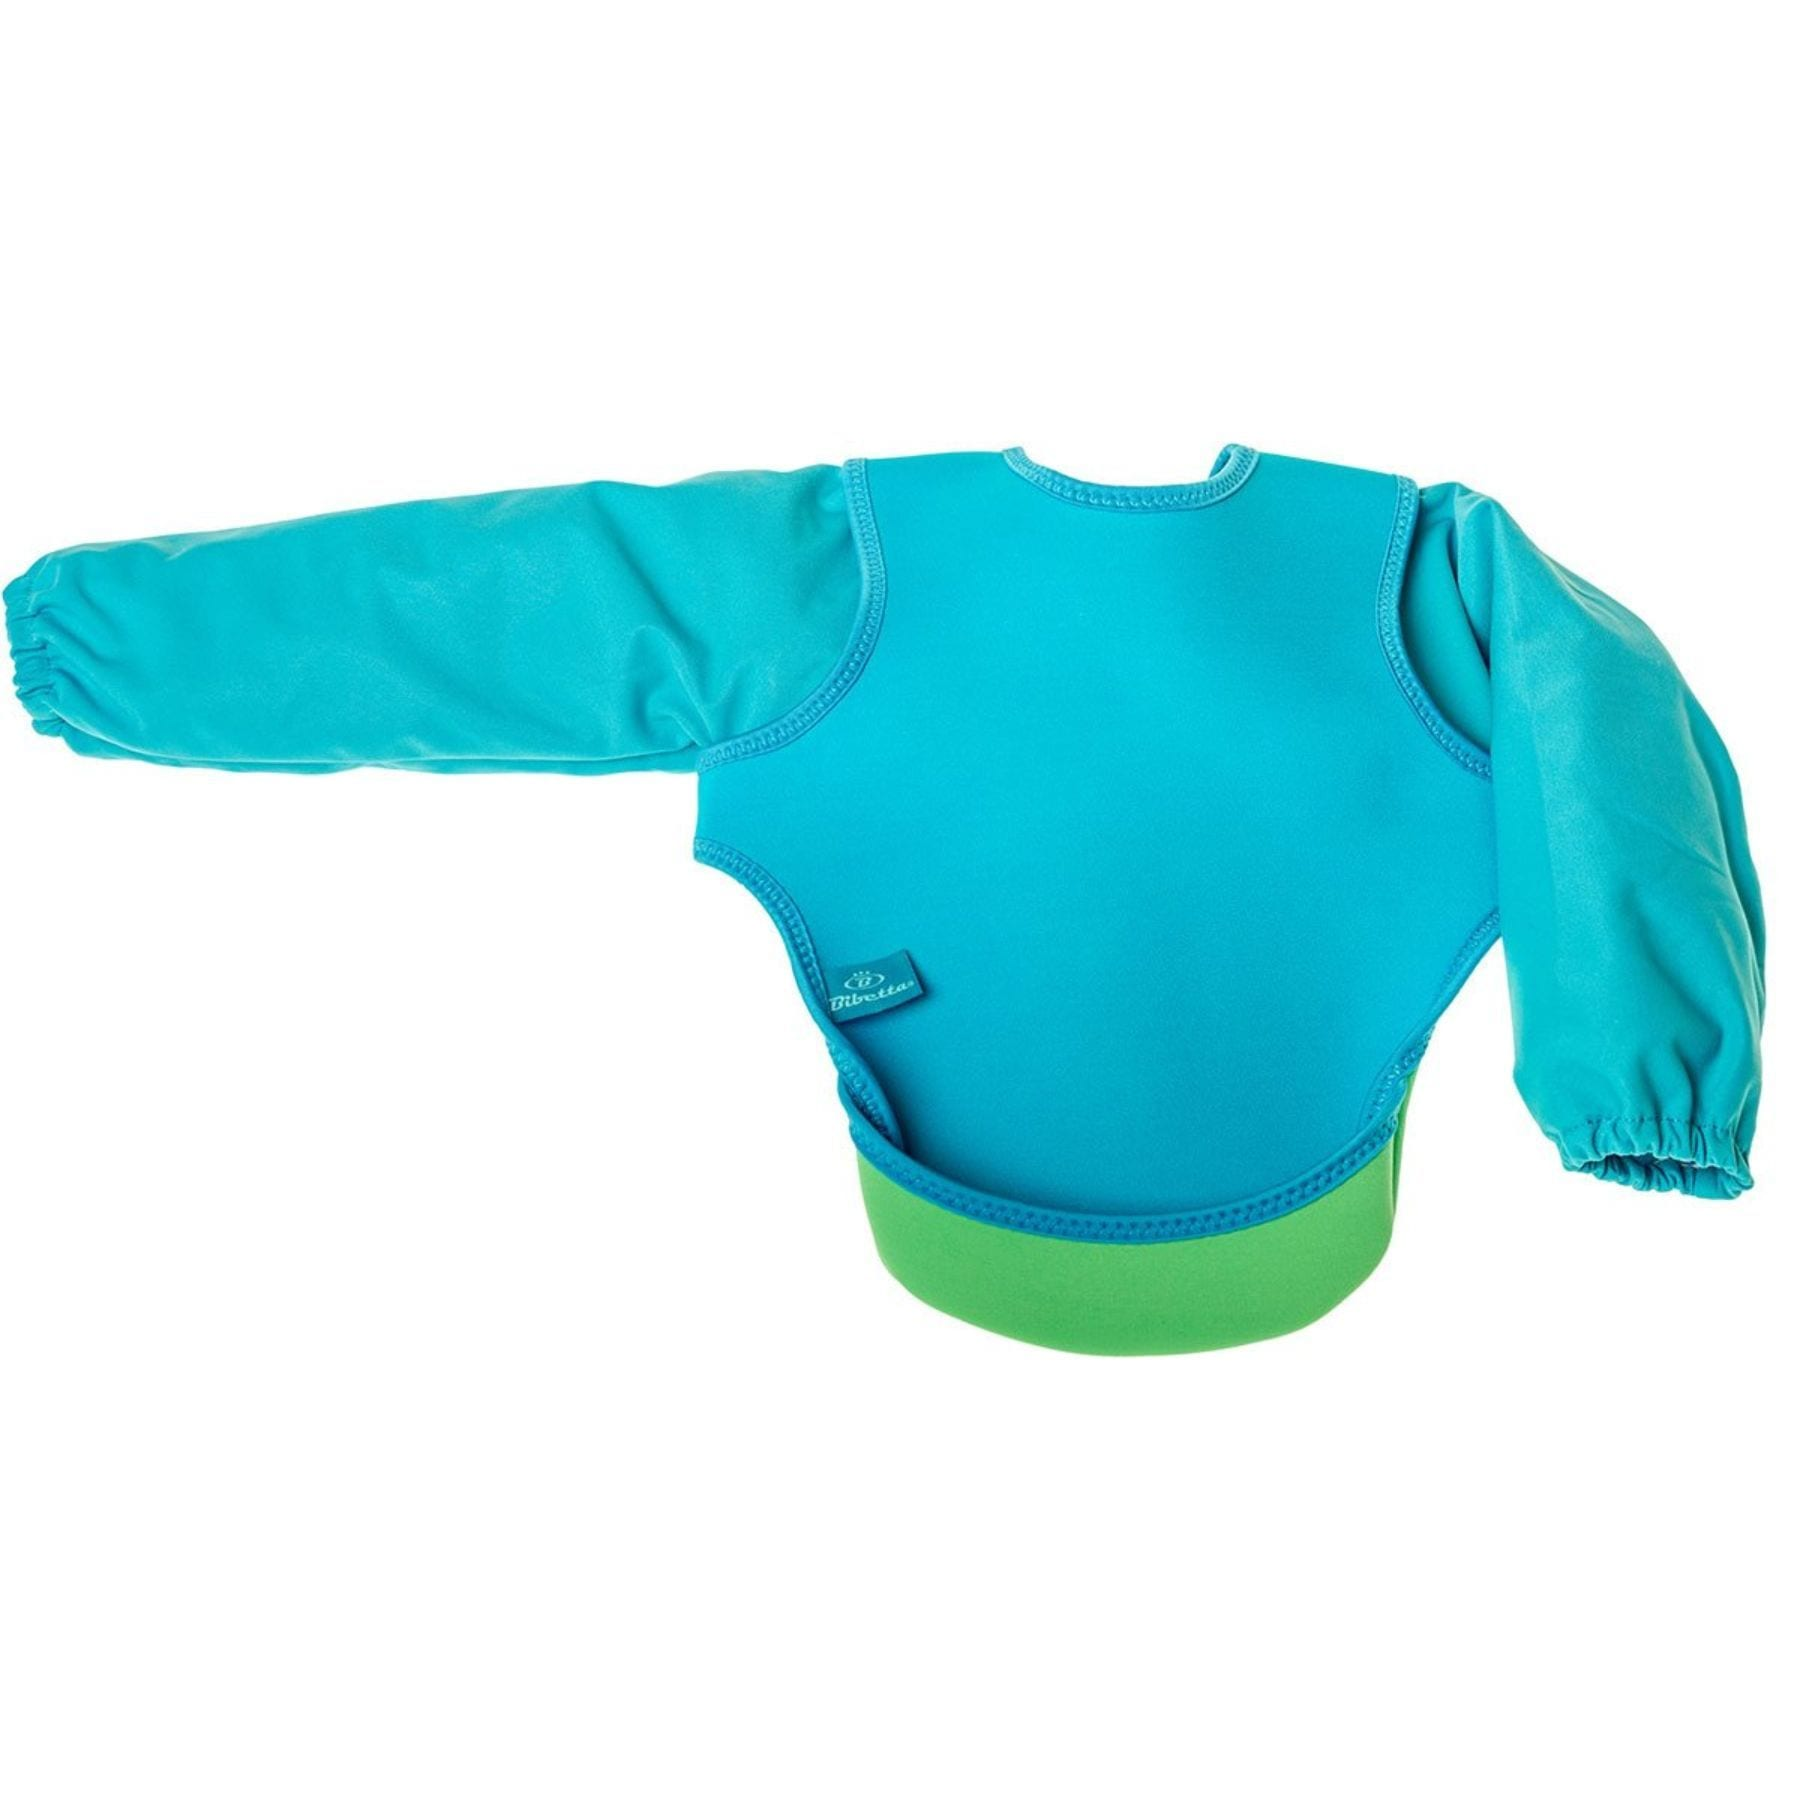 Bibetta Ultrabib with Sleeves